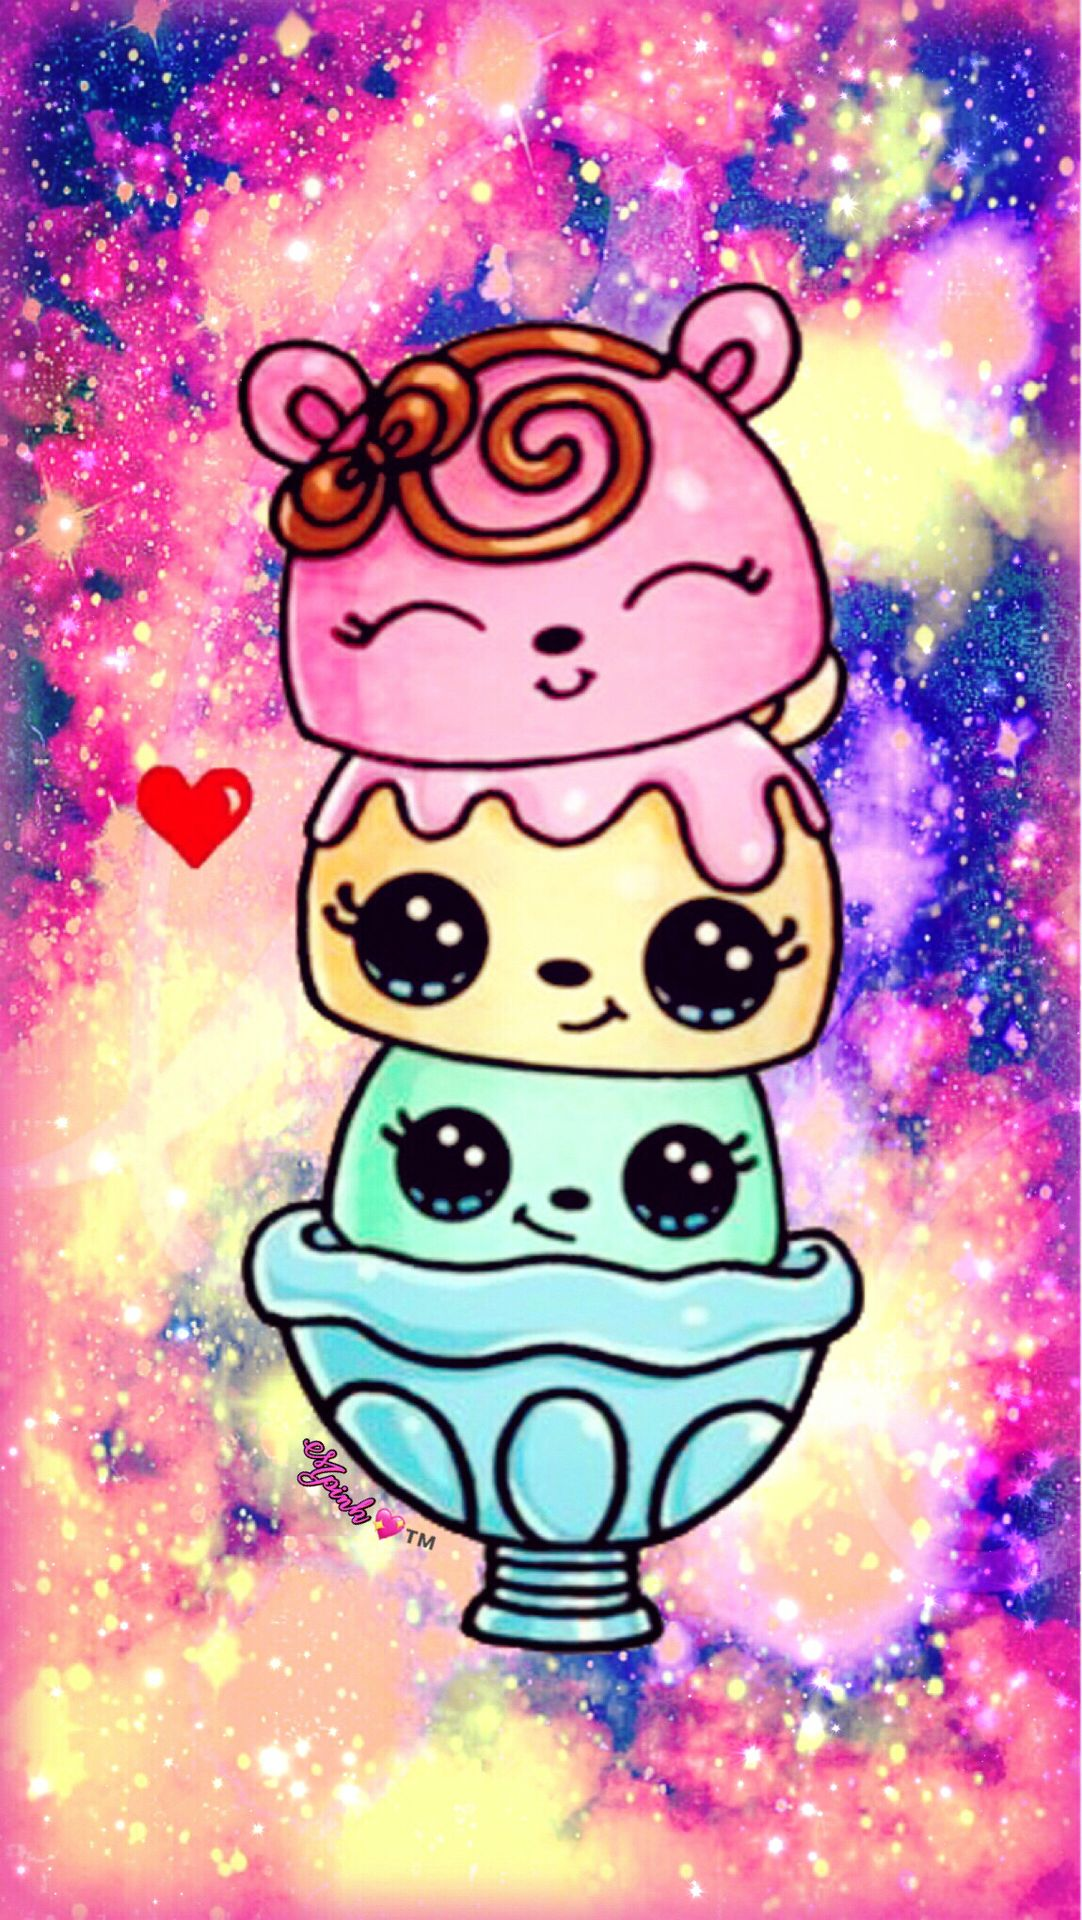 Cute Kawaii Icecream Galaxy Wallpaper #androidwallpaper